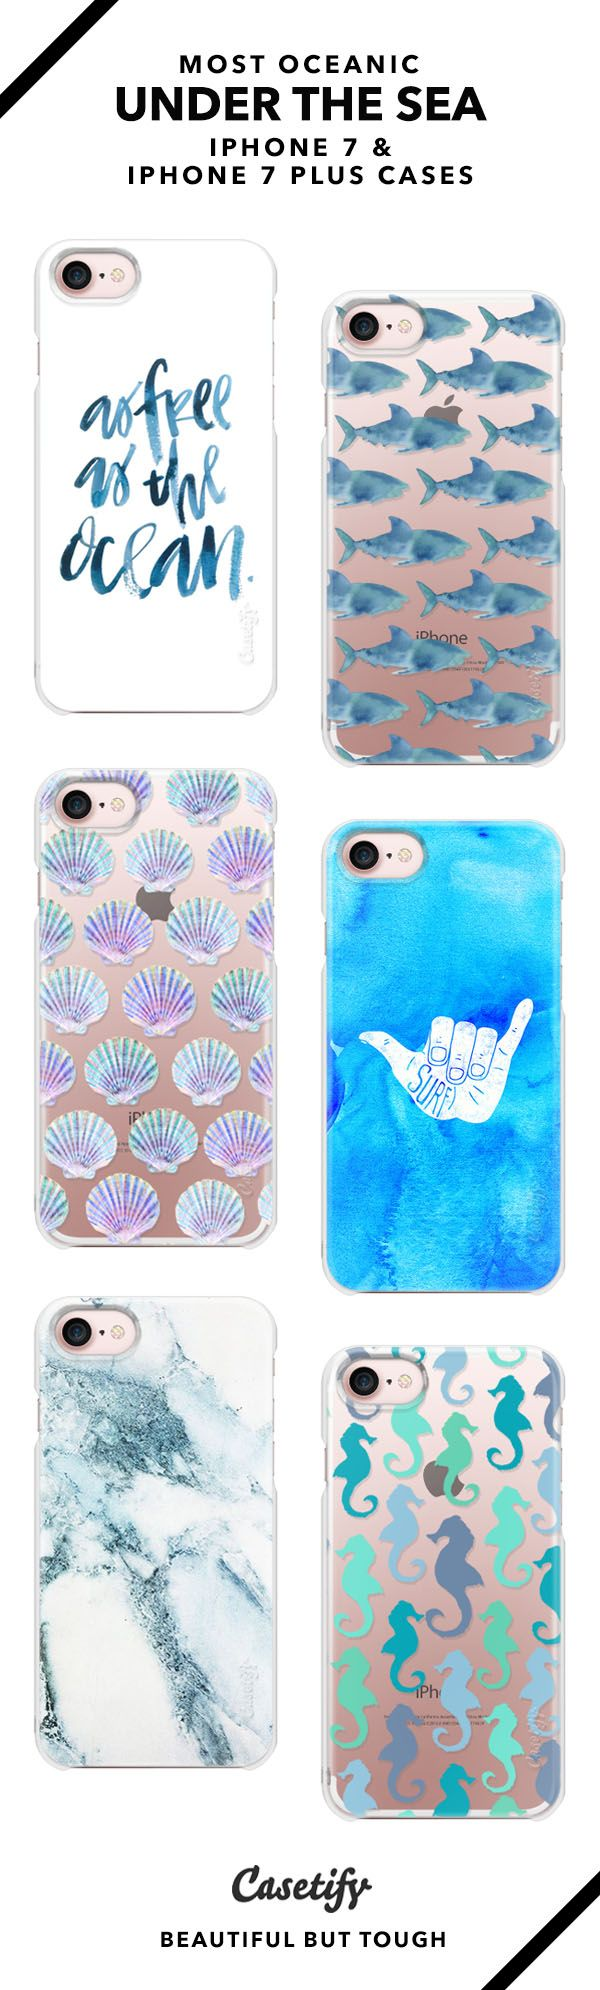 """""""The Ocean is everything I want to be. Beautiful, mysterious, wild and free."""" 